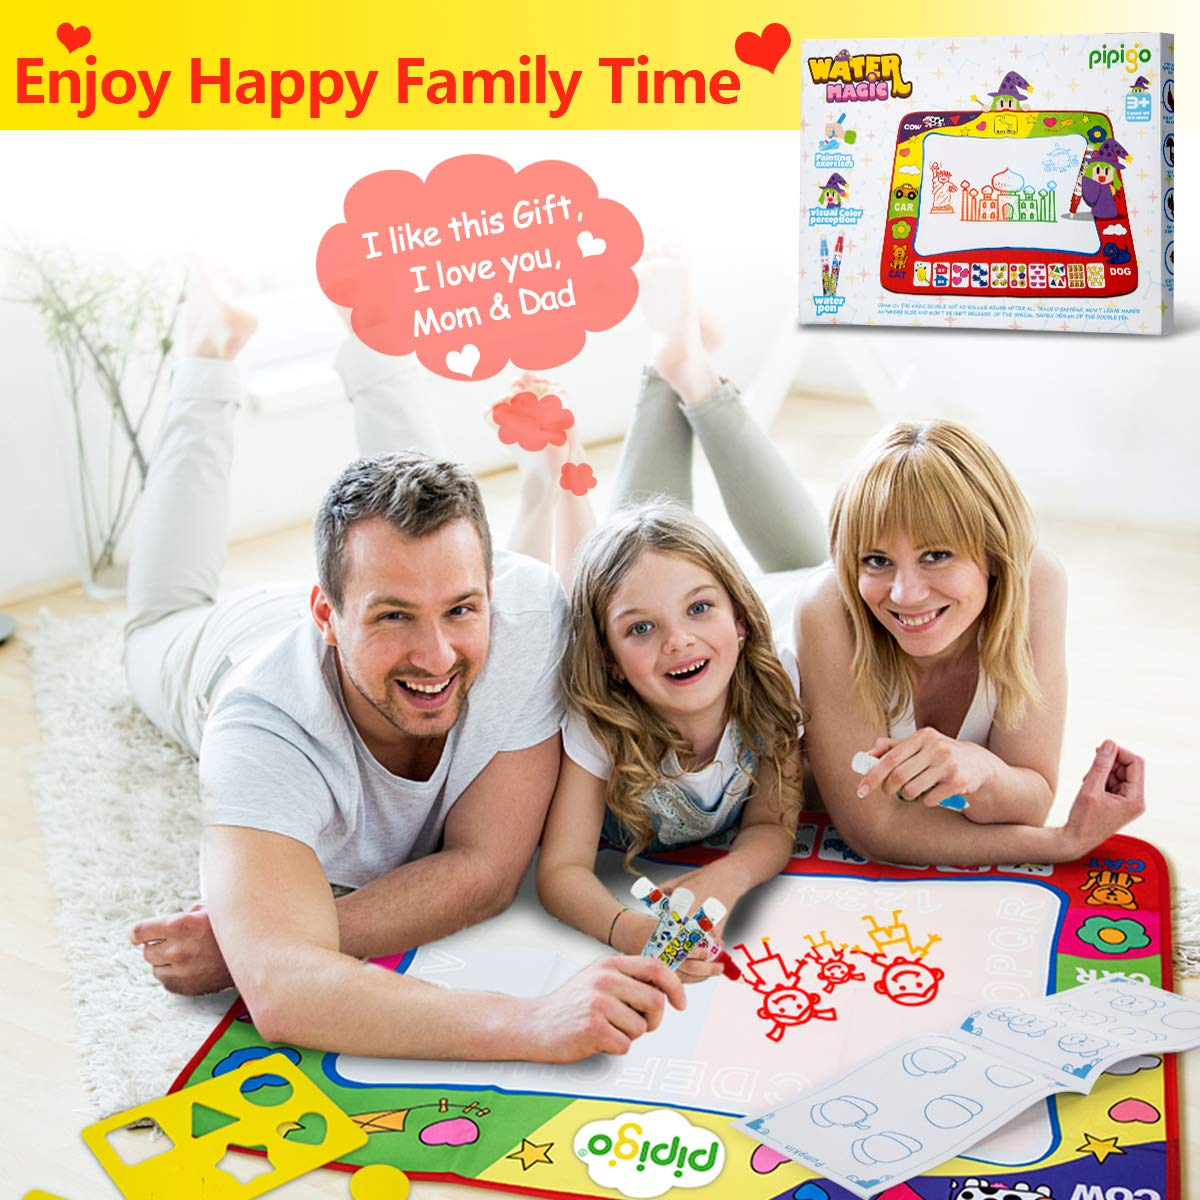 Magic Water Doodle Mats Water Drawing Mat Large 32x24in Painting Pad with 4 Pens 6 Molds Learning Educational Toddler Toys Toddler Gifts for Girls Boys Age 2 3 4 5+ Year Old Girl Gifts Boy Gifts